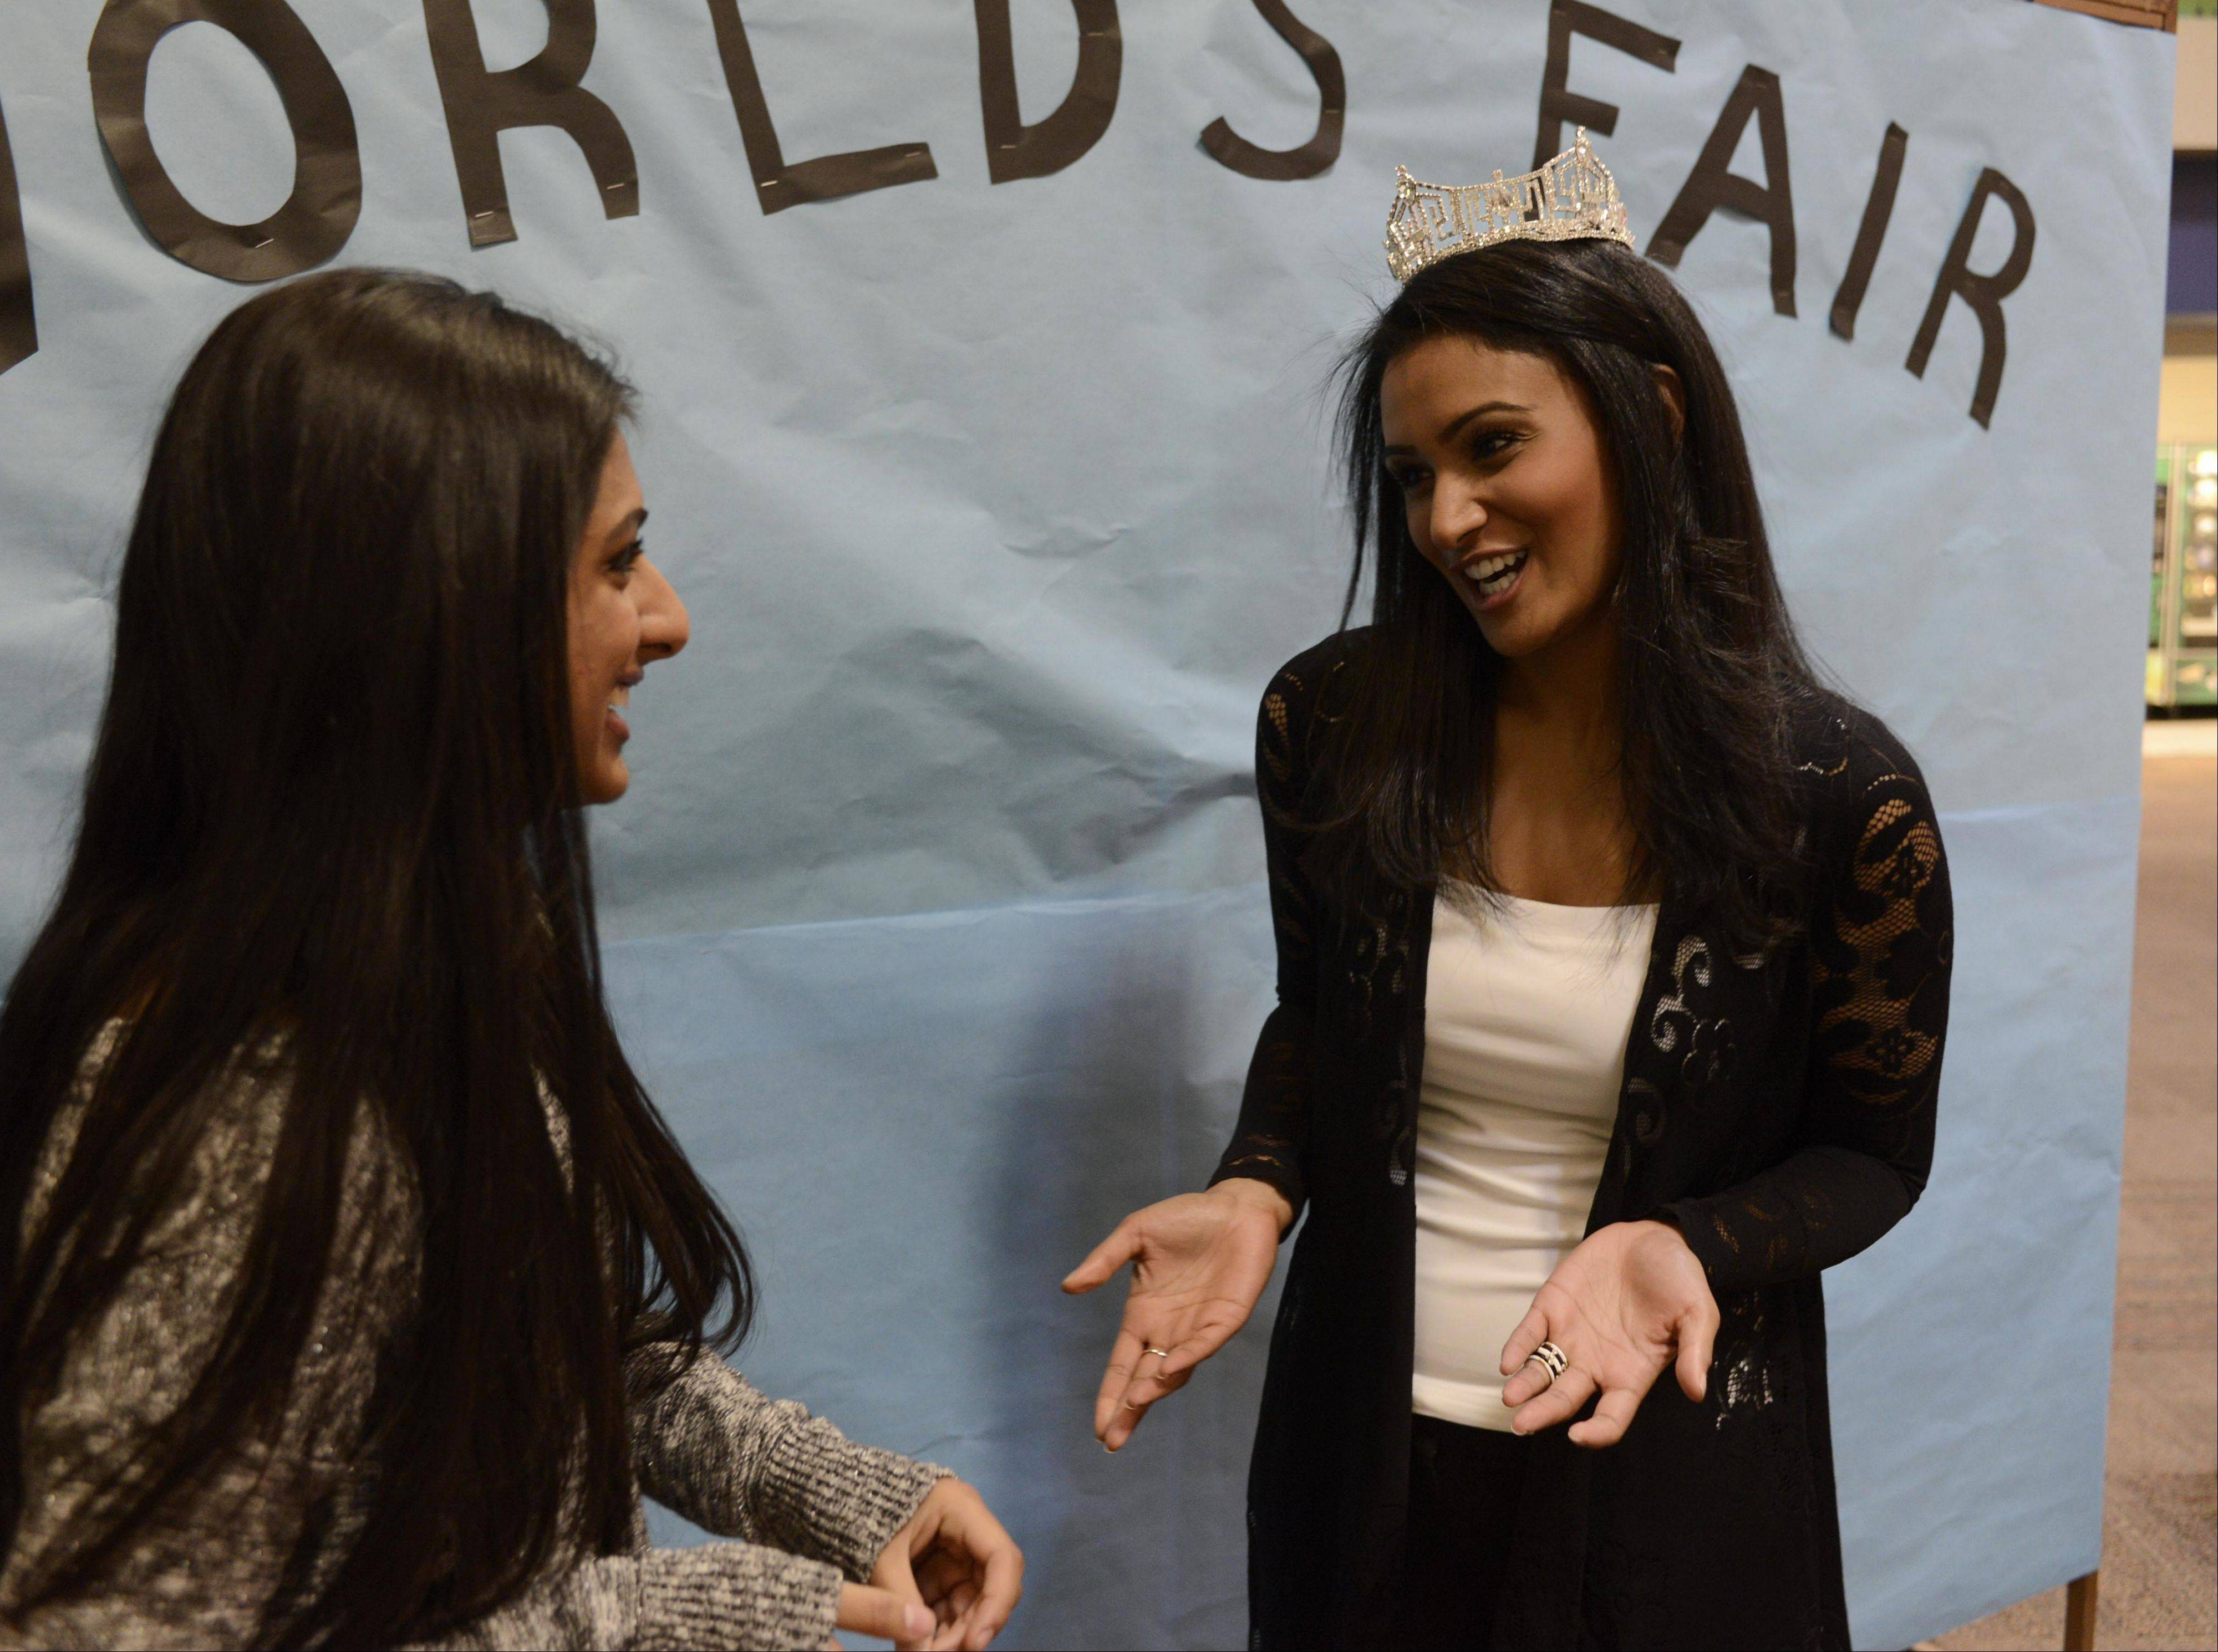 Fathma Rahman, left, a Stevenson High School junior, invited Nina Davuluri, Miss America 2014, to visit Saturday the Stevenson High School World's Fair event in Lincolnshire.